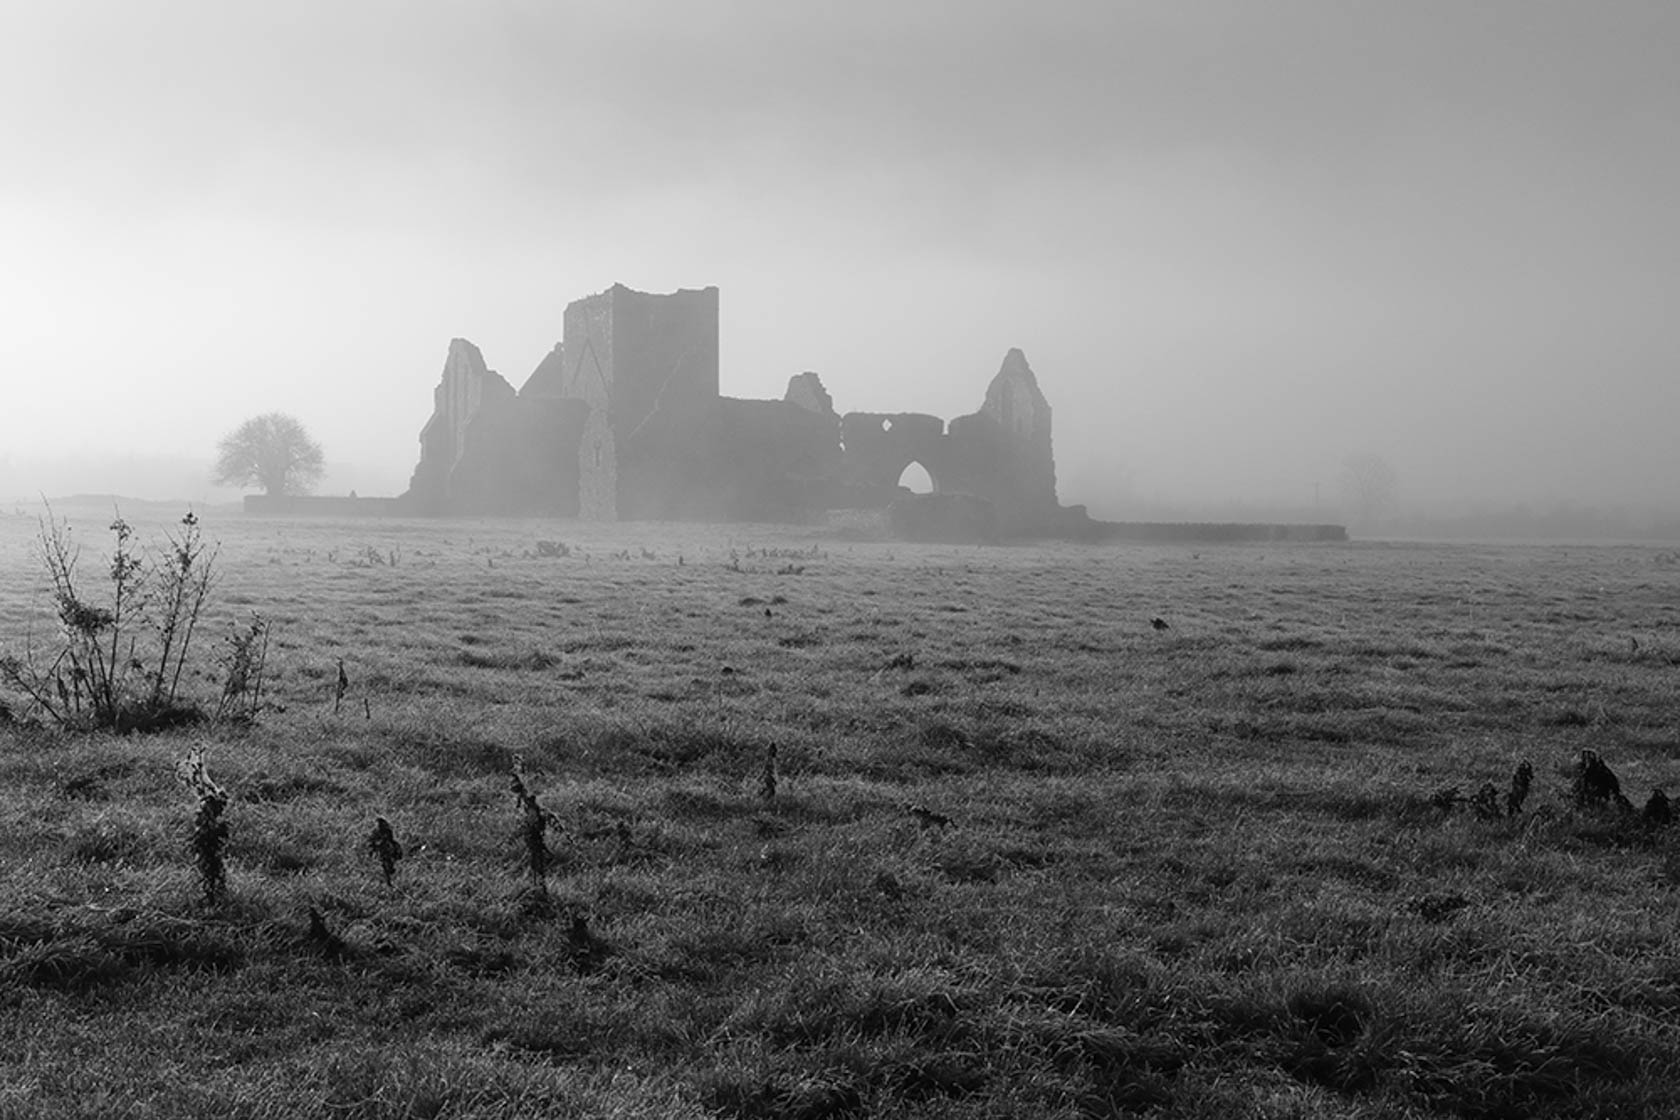 Ruins in a field in monochrome taken with the Canon EOS 760D digital SLR camera